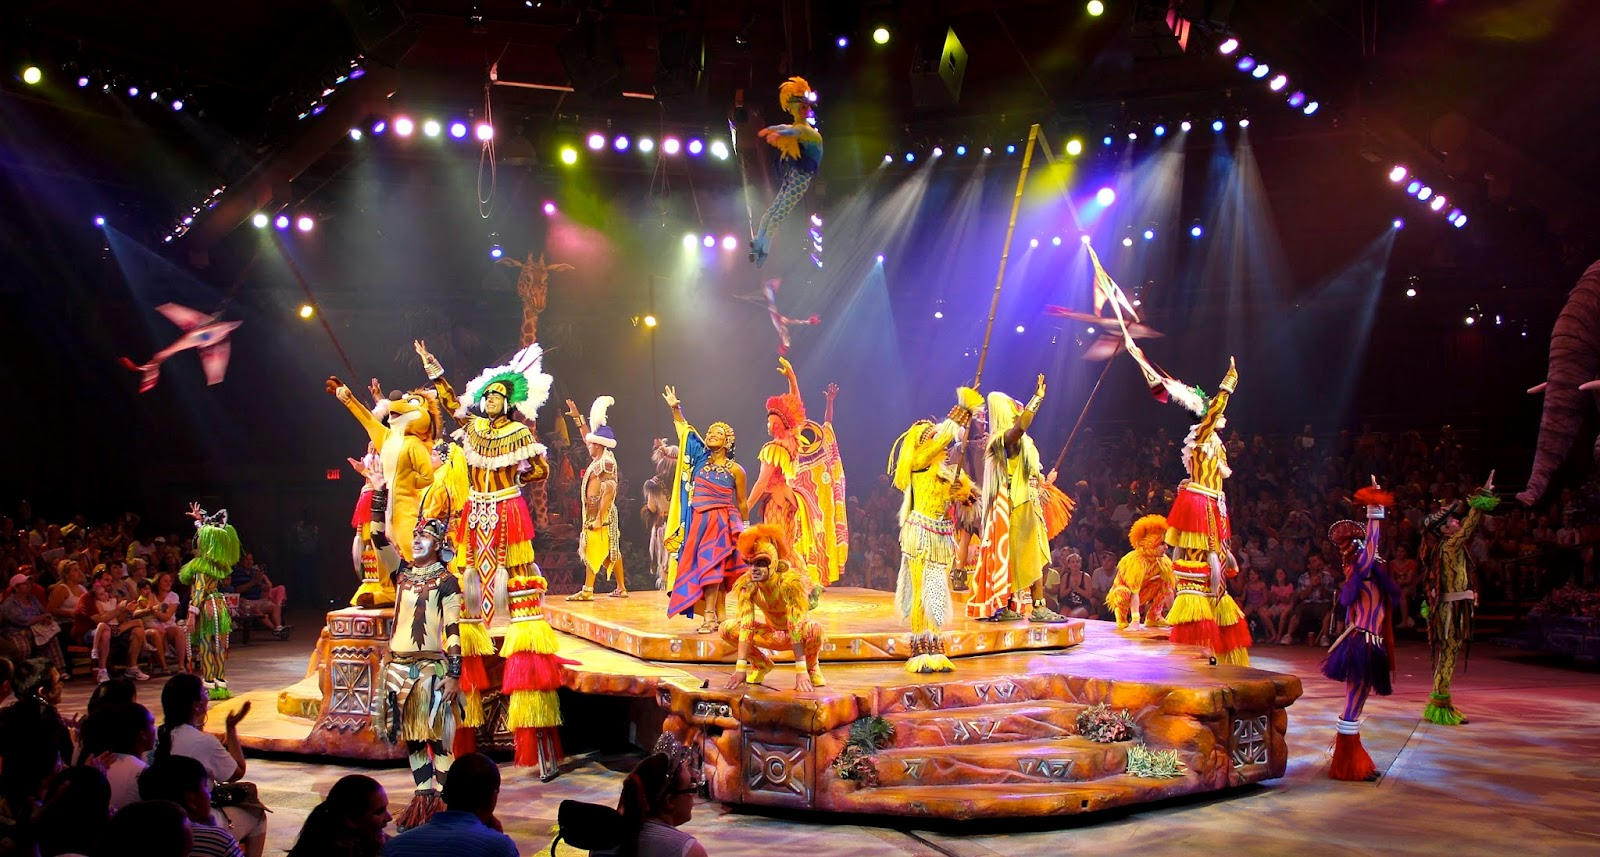 Parque Animal Kingdom da Disney Orlando: Festival of the Lion King